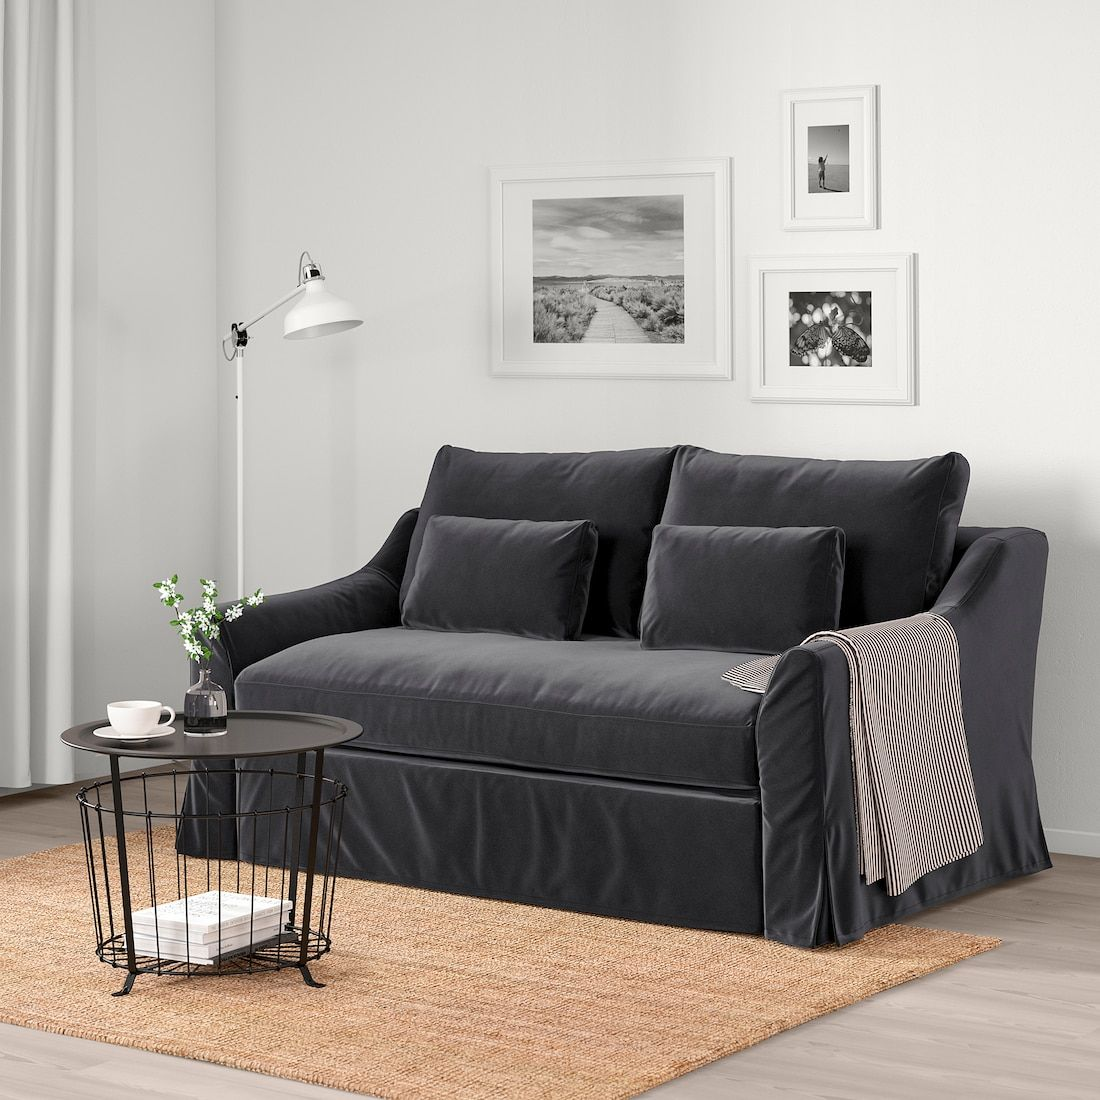 Farlov Sleeper Sofa Djuparp Dark Gray Sleeper Sofa Sofa Bed Sofa